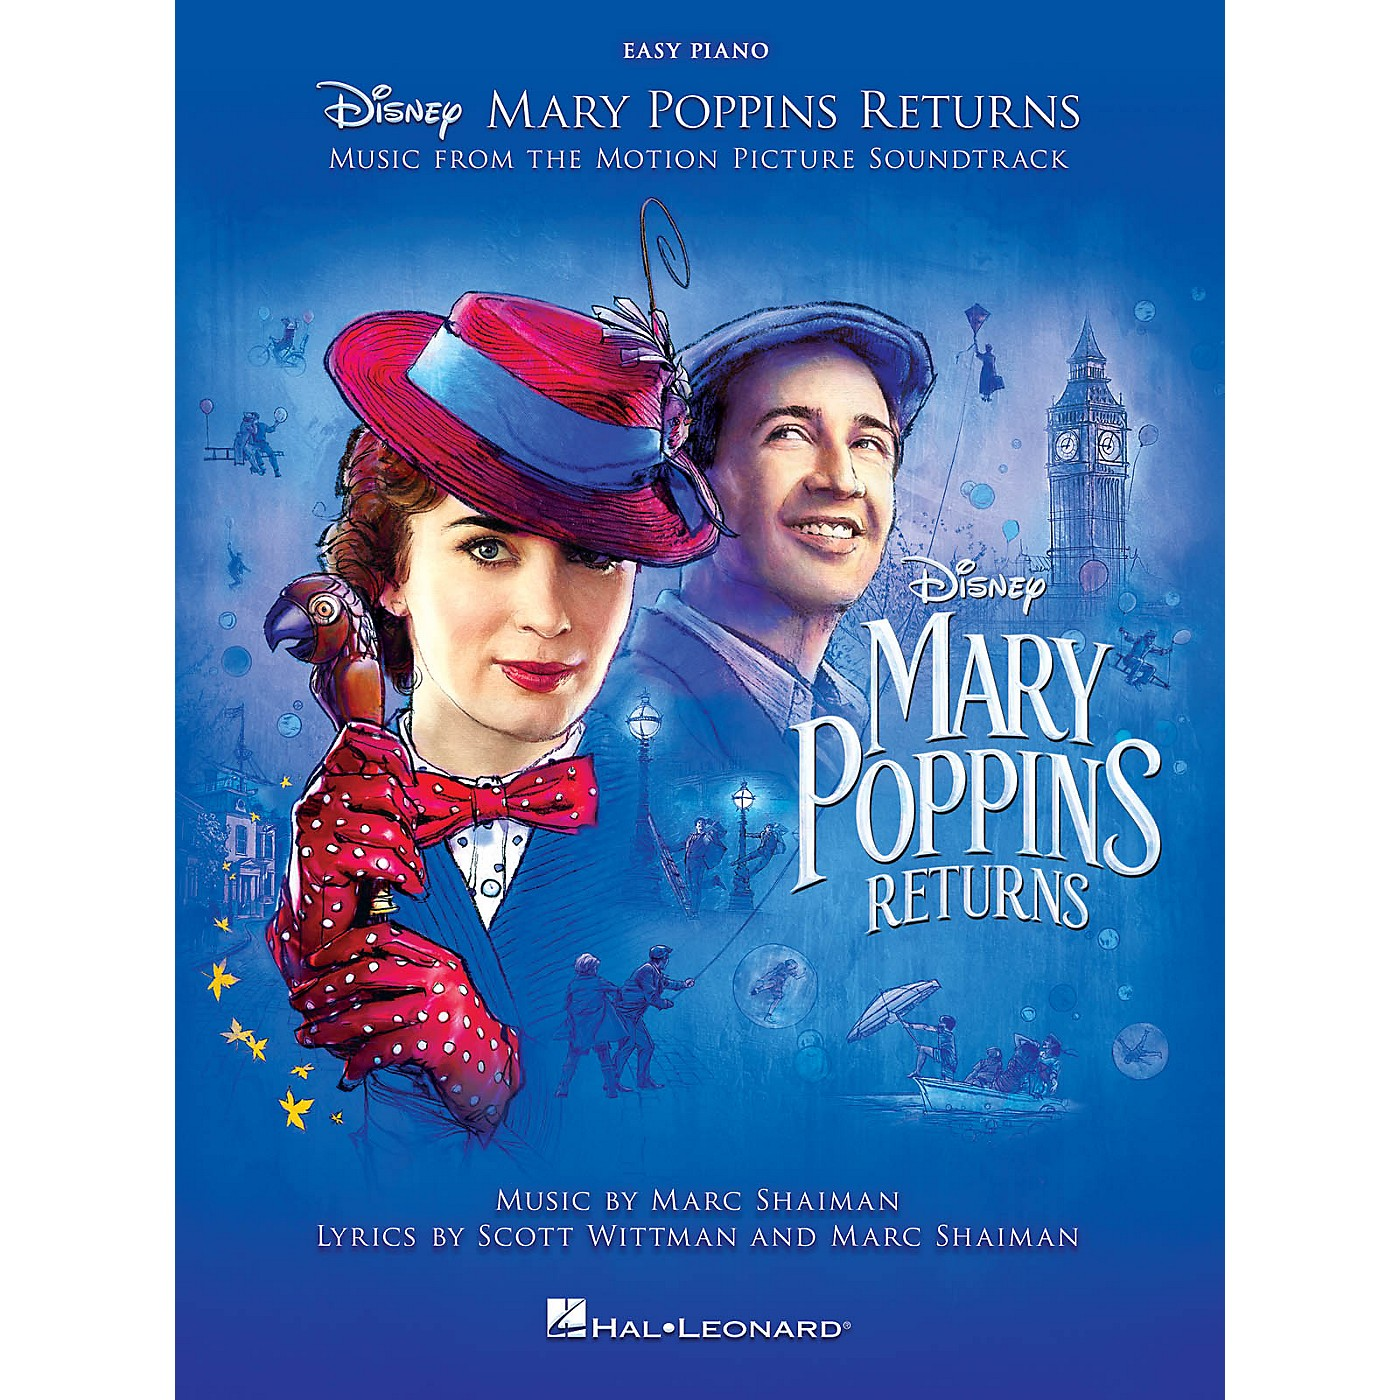 Hal Leonard Mary Poppins Returns (Music from the Motion Picture Soundtrack) Easy Piano Songbook thumbnail